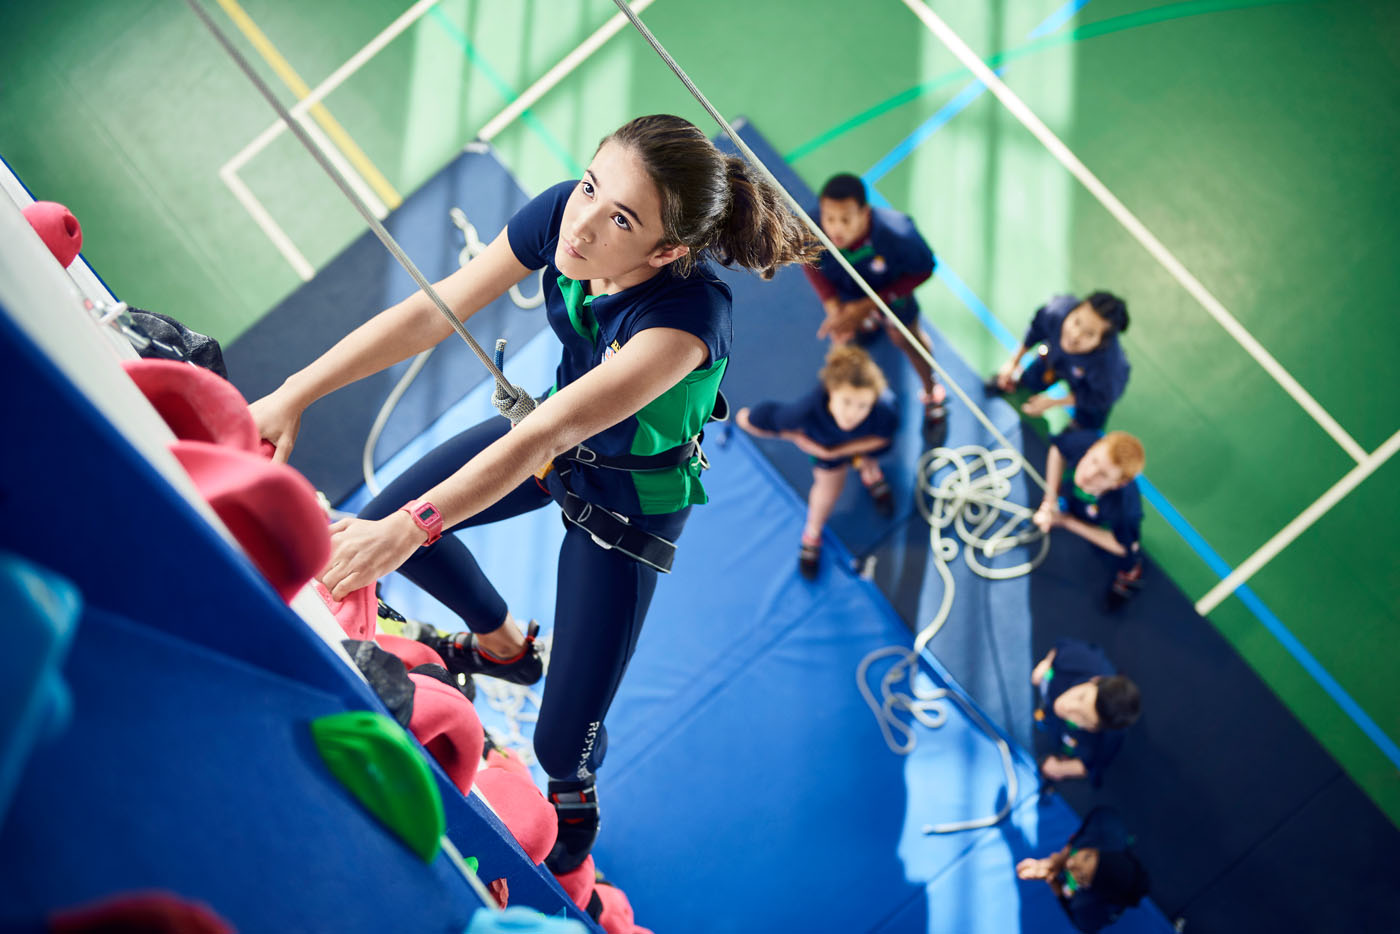 A student climbing high on the climbing wall